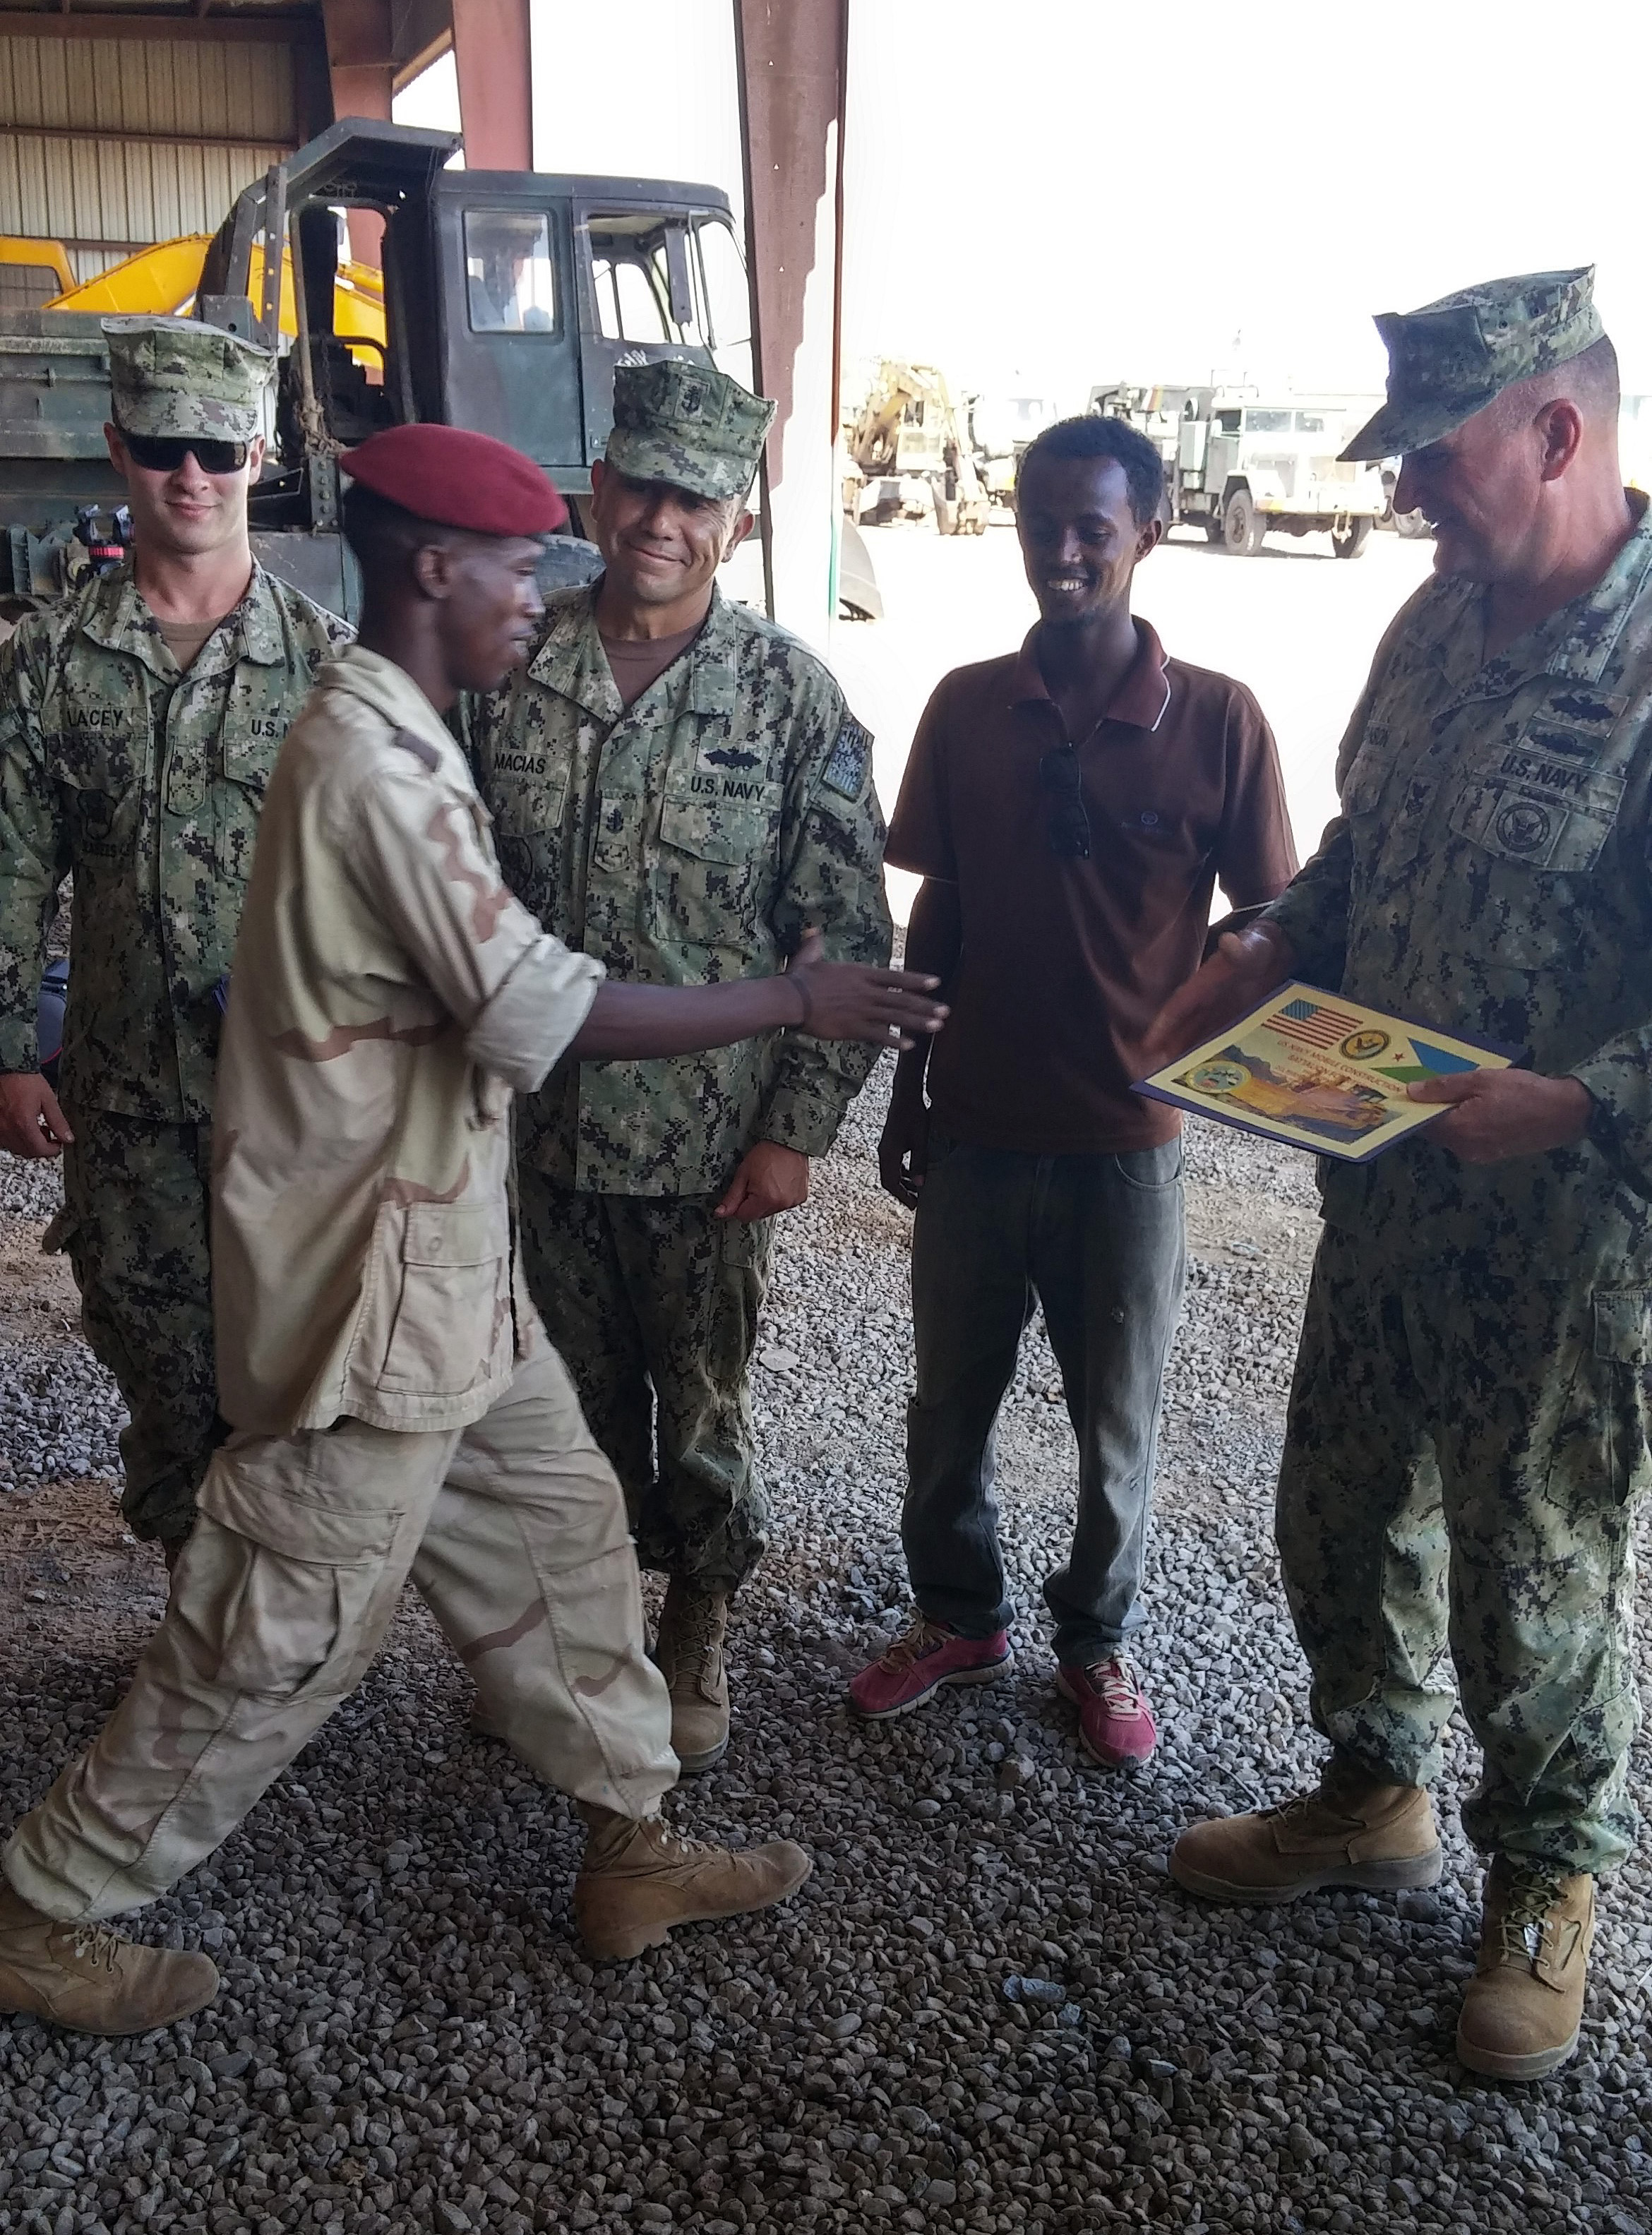 Camp Lemonnier, Djibouti (May 12, 2015) U.S. Navy Chief Petty Officer Gerardo Macias, builder, U.S. Navy Petty Officer 1st Class Douglas Johnson, construction mechanic Naval Mobile Construction Battalion (NMCB) 14 and Constructionman Austin Lacey, construction mechanic NMCB 11 present a Certificate of Recognition for completion of Equipment Operator and Maintenance training to a Djiboutian Army Equipment Operator during an awards ceremony following a U.S. Army-led training evolution. NMCB-14 Detachment HOA is assigned to Camp Lemonnier in support of Combined Joint Task Force – Horn of Africa. (U.S. Navy photo by Chief Petty Officer Ellery Sayre)